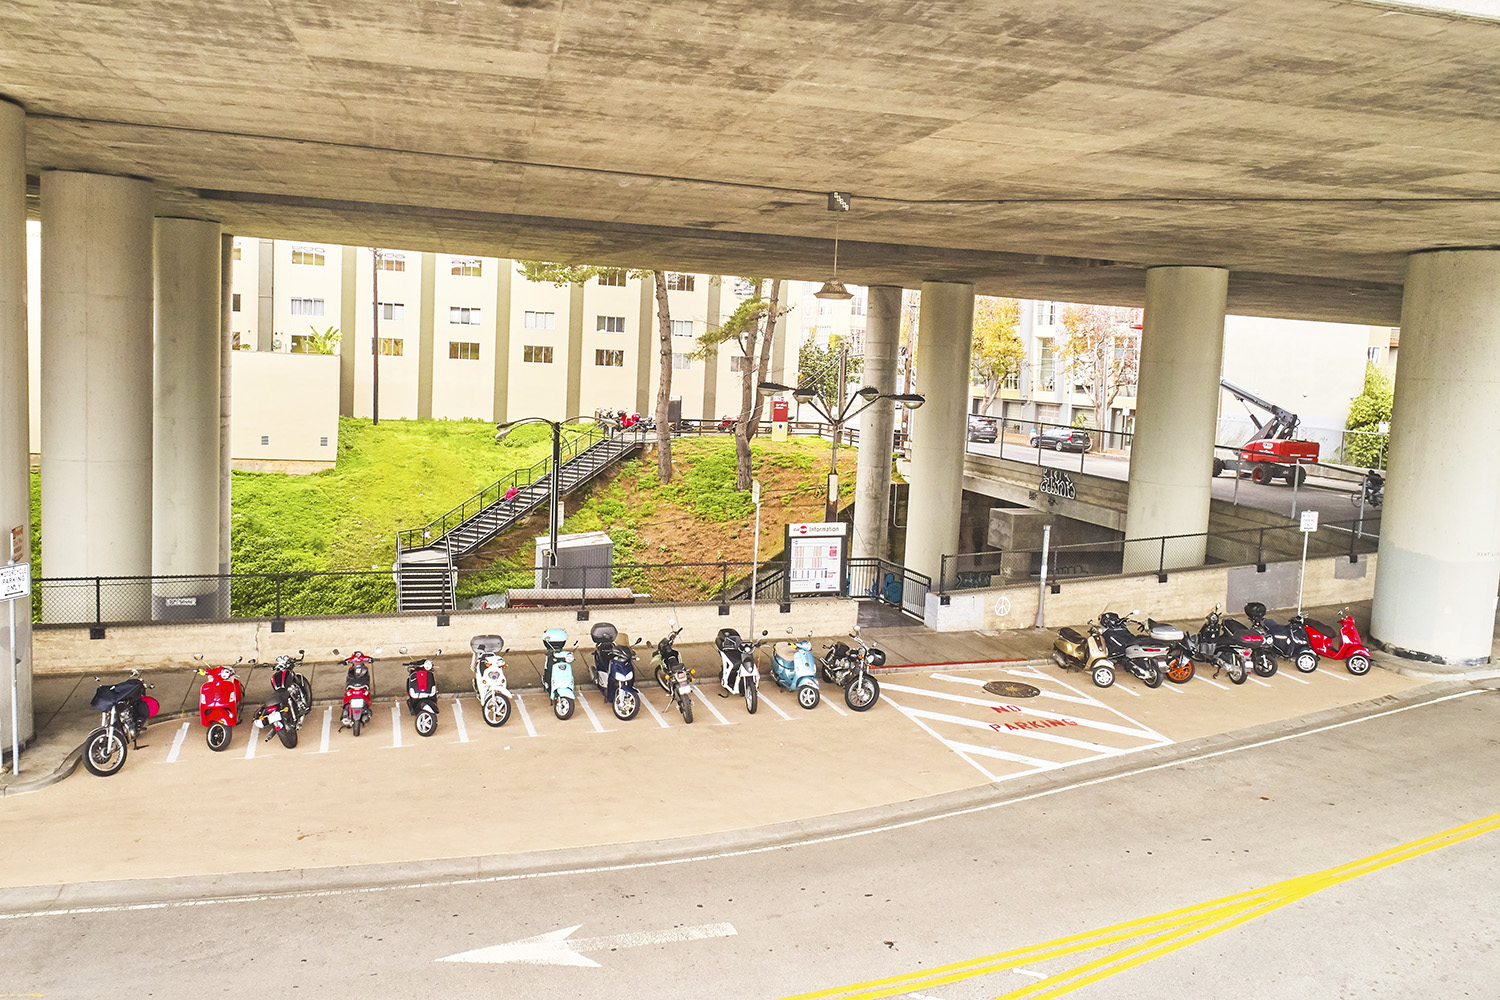 New scooter and bike parking